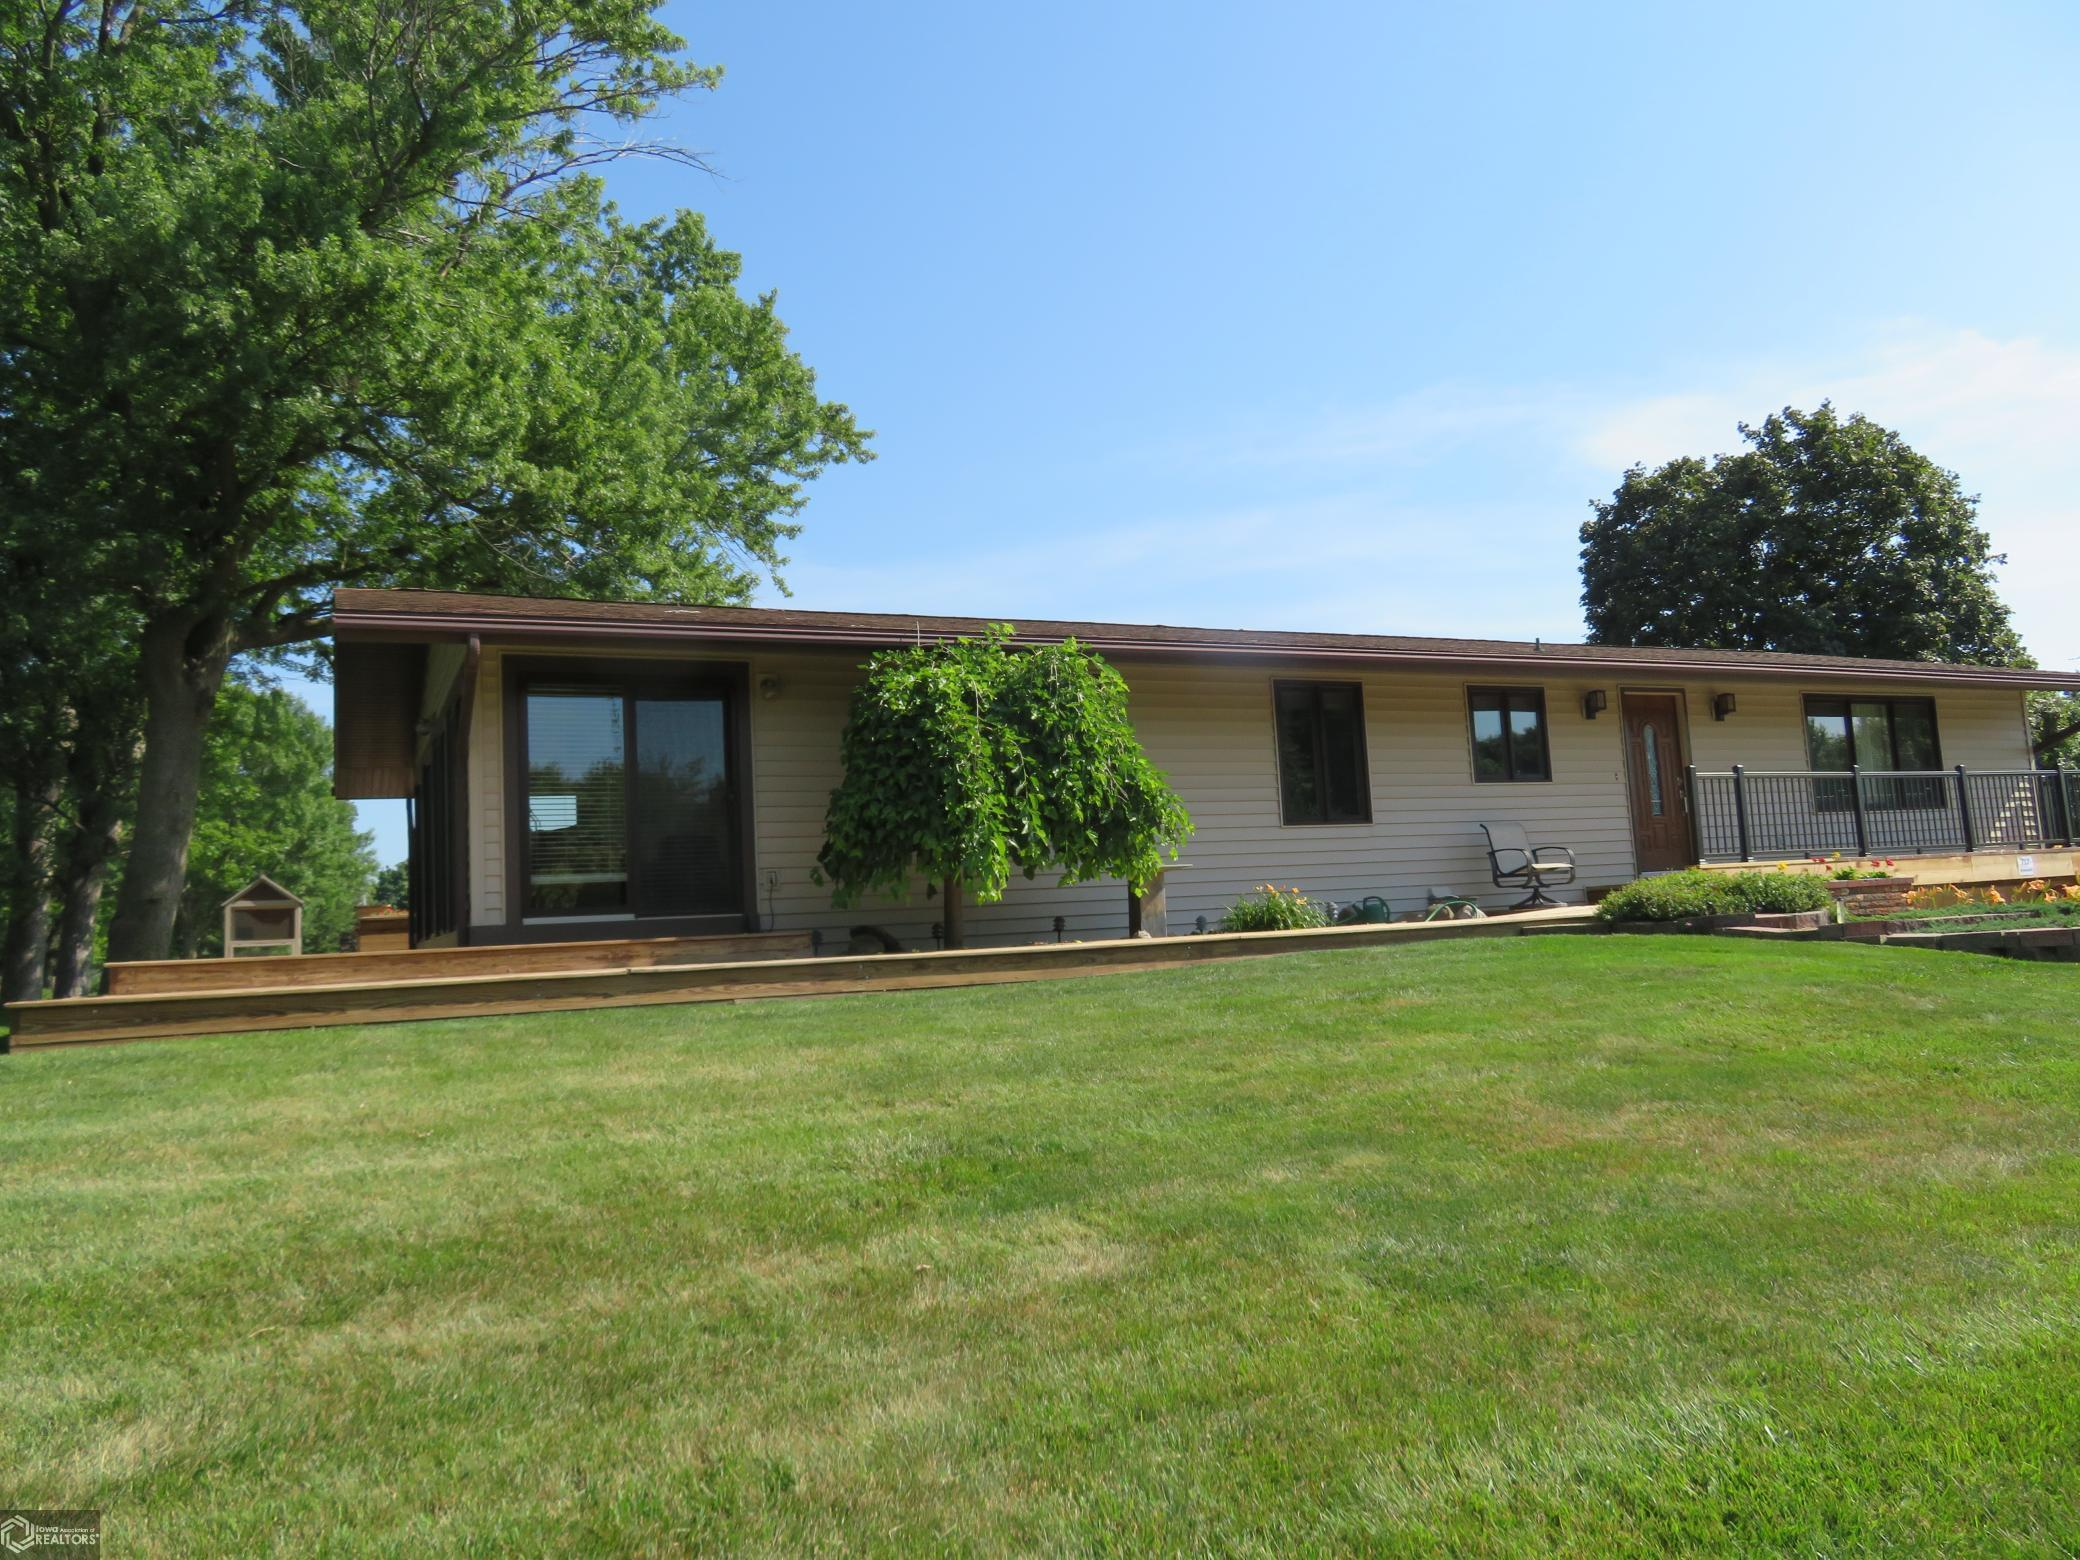 717 Willow Property Photo - Clarion, IA real estate listing